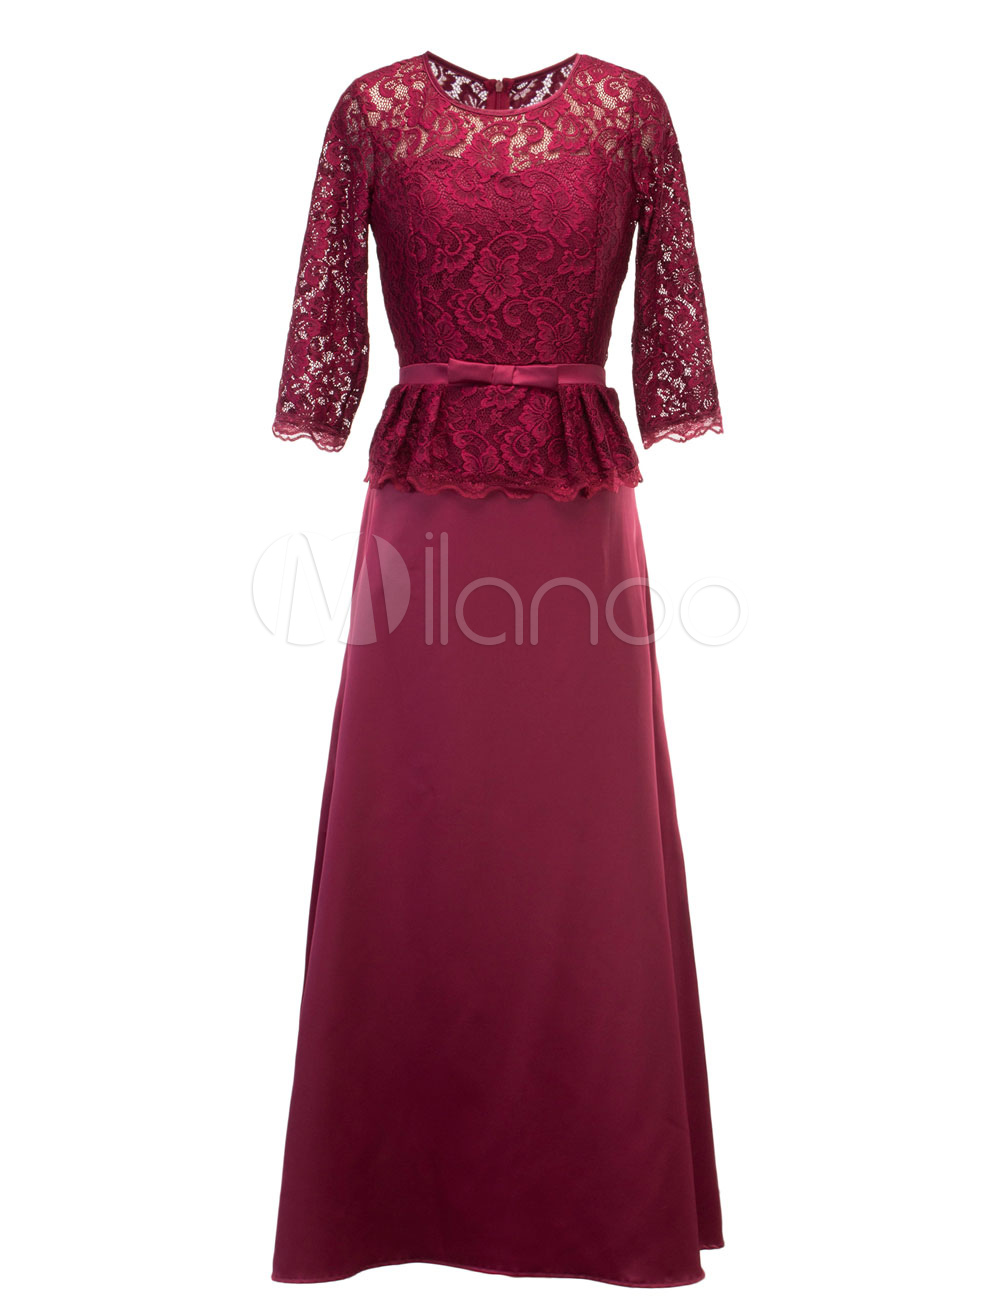 Buy Lace Maxi Dress Round Neck Half Sleeve Bow Decor Peplum Women's Rose Red Long Dress for $37.99 in Milanoo store